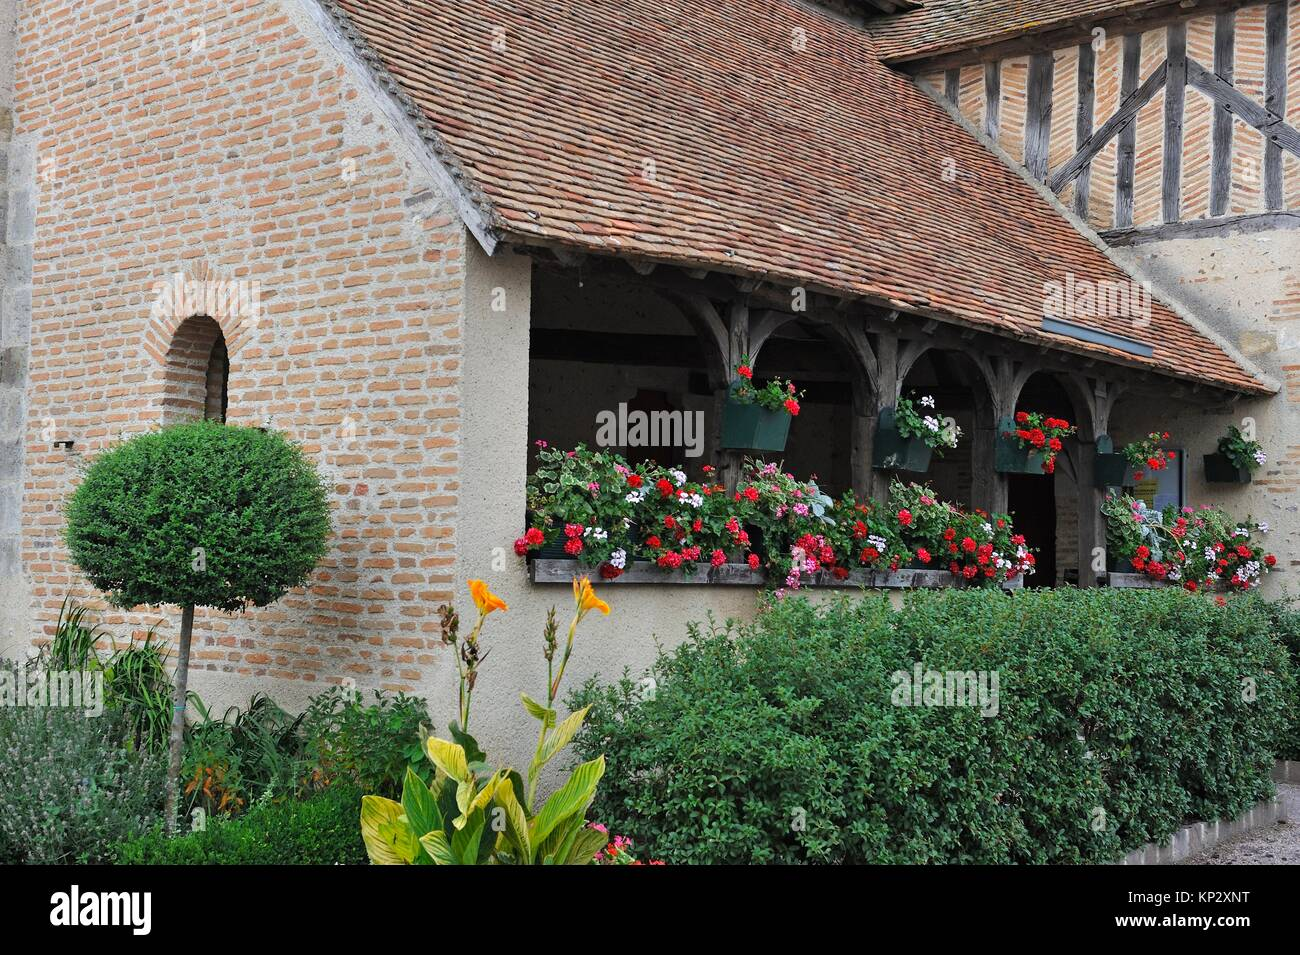 ´´caquetoire´´ (typical french name for a kind of porch where people can chat ) of the church - Stock Image